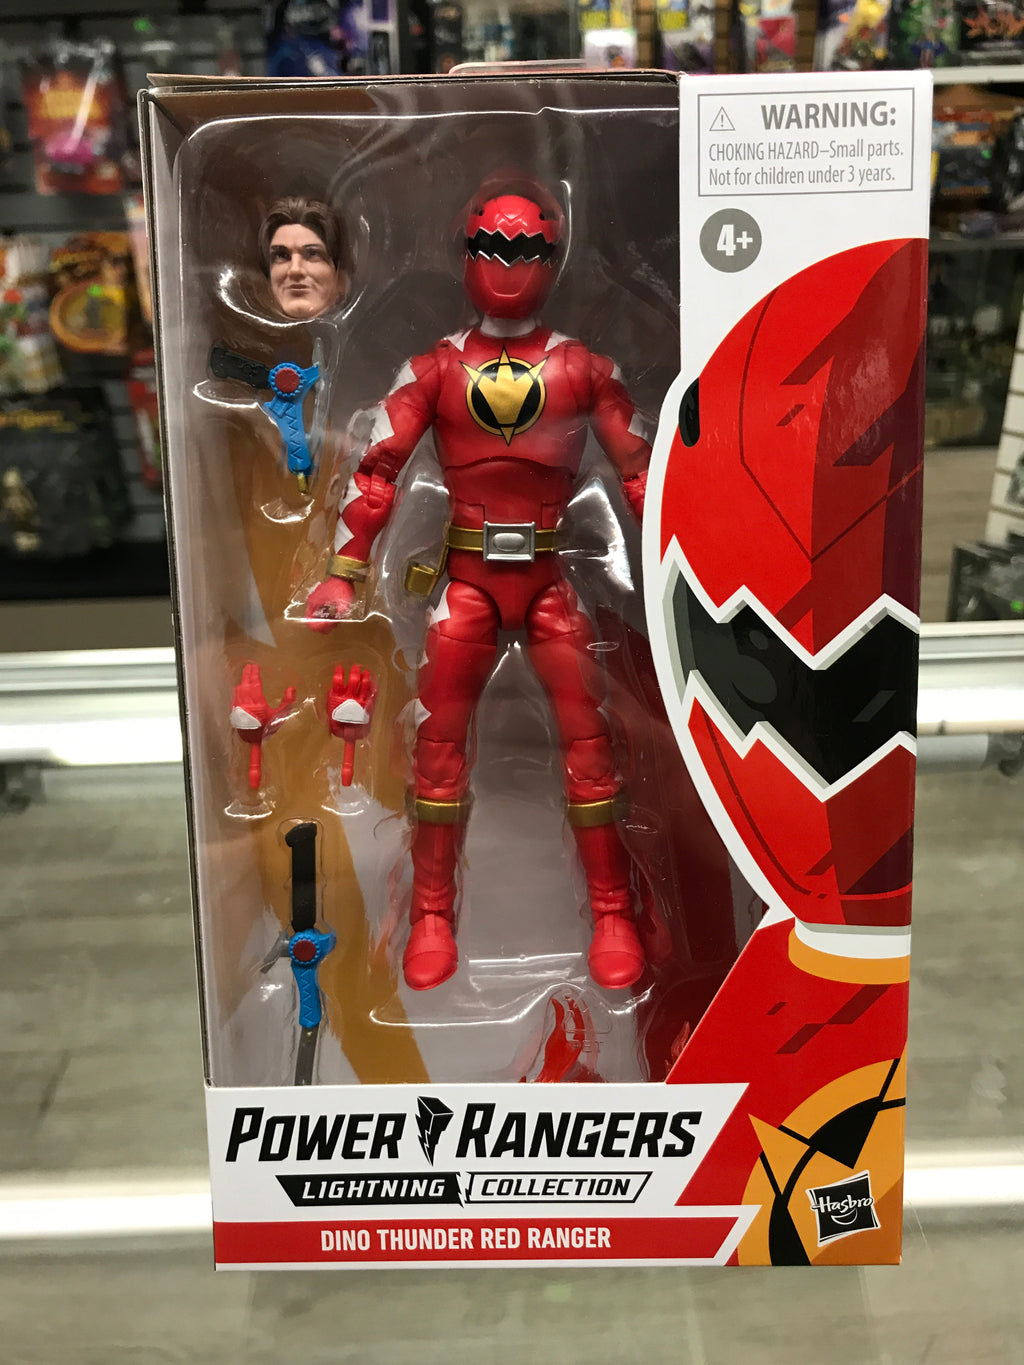 Saban's Power Rangers Lightning Collection Dino Thunder Red Ranger